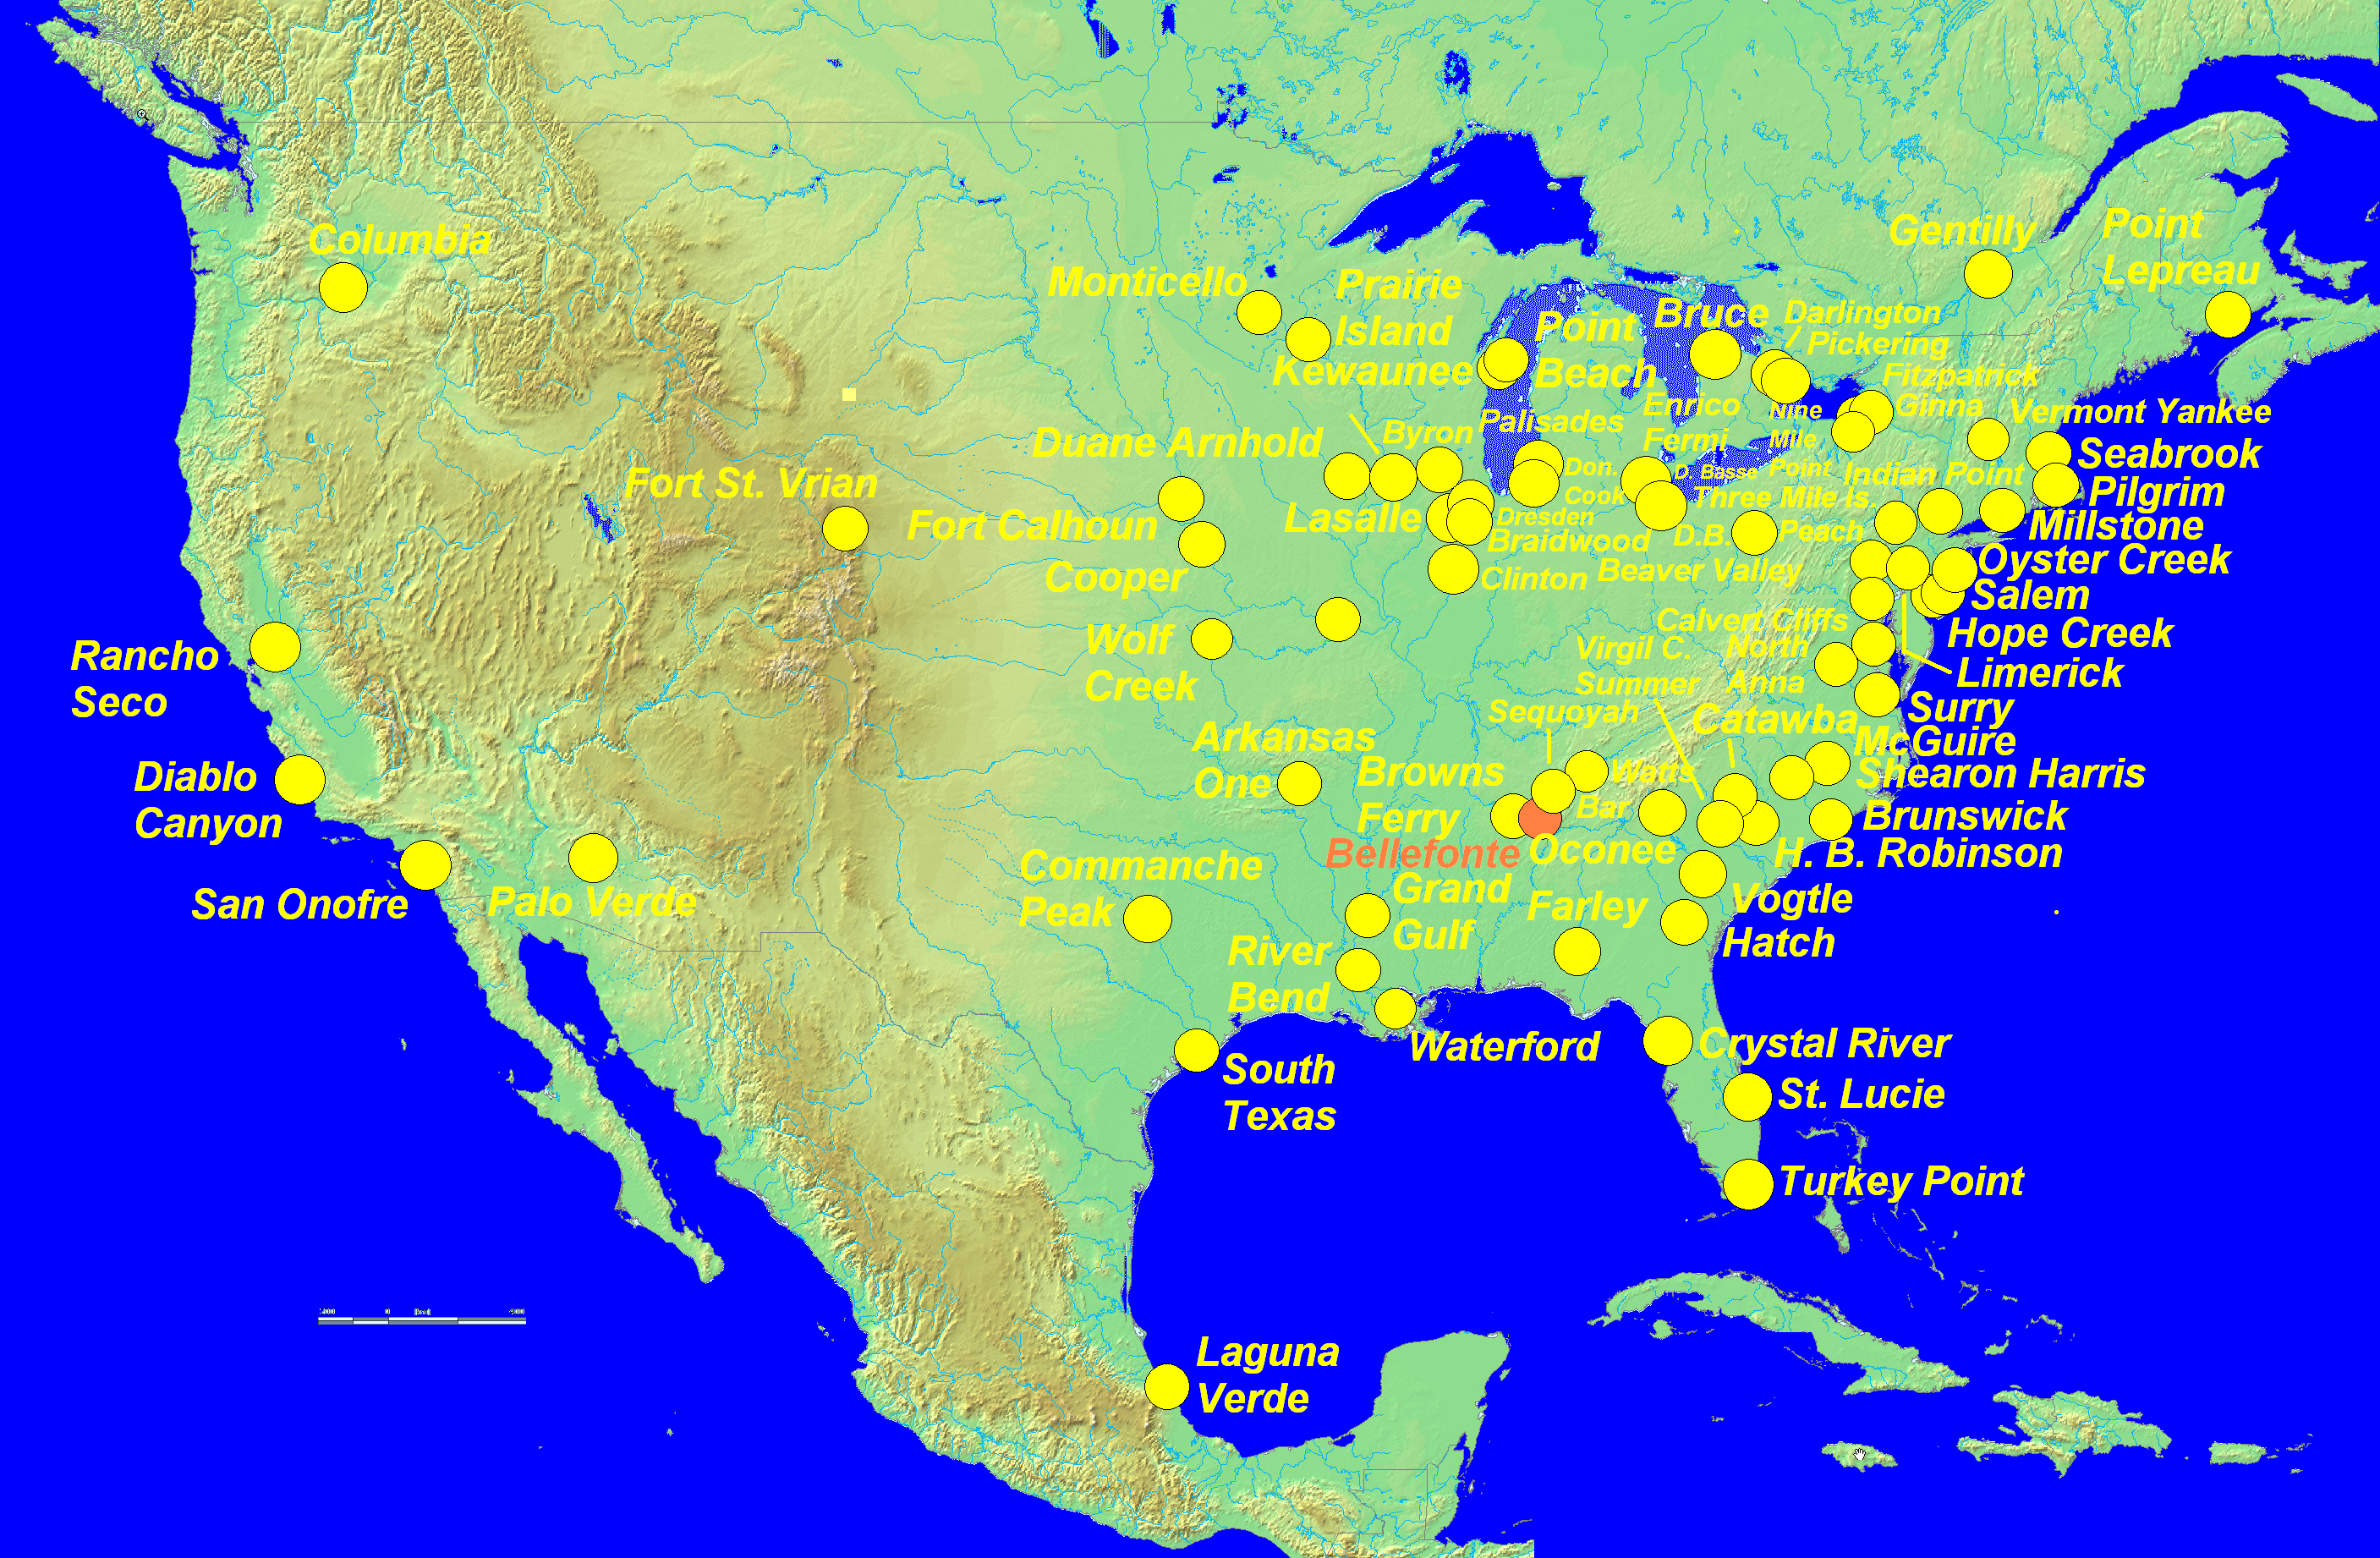 How Close Are You To A Nuclear Power Plant - Where are the nuclear power plants in the us map